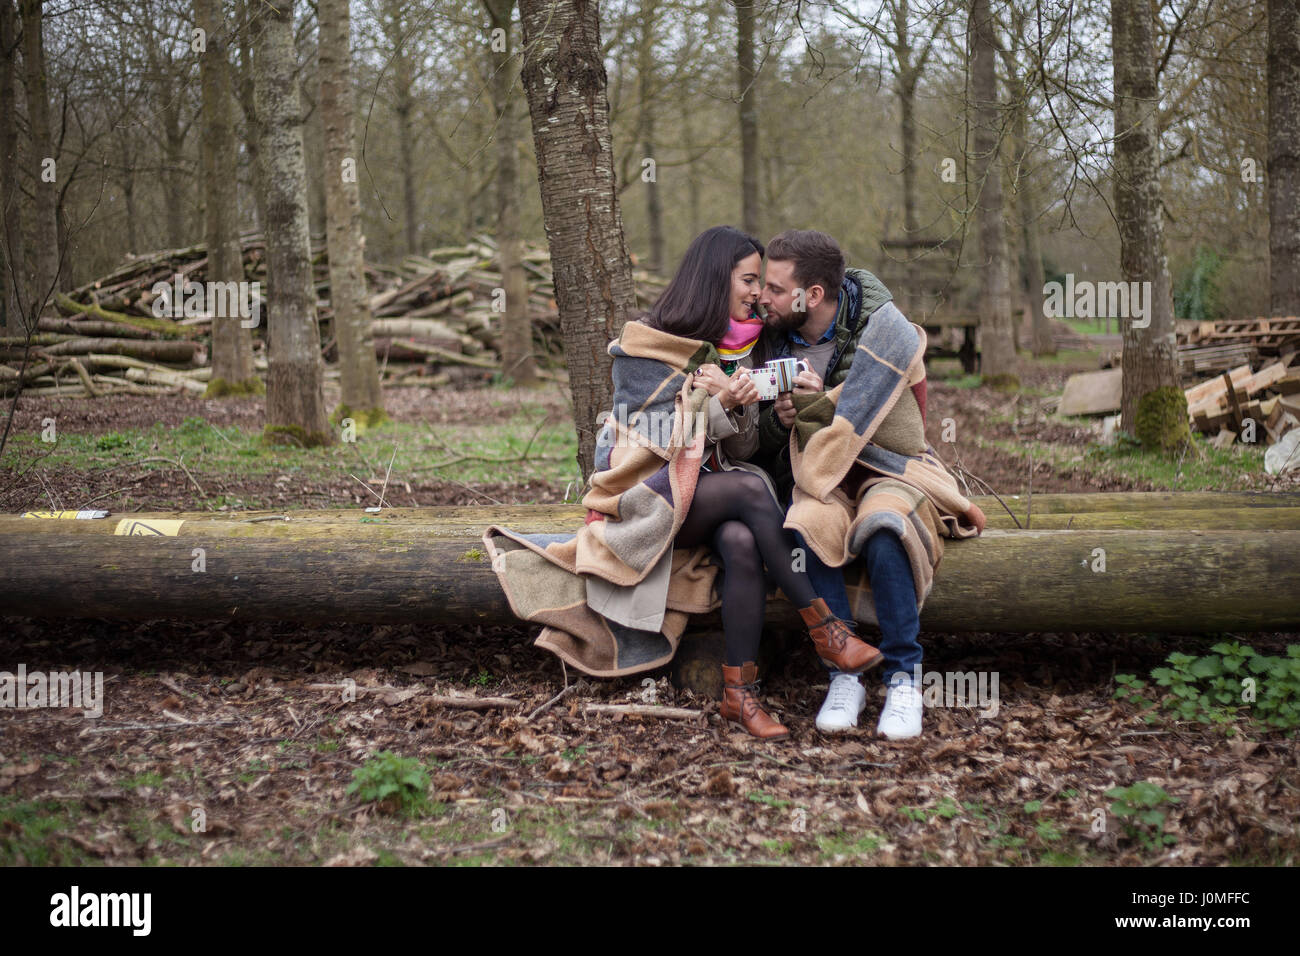 Love, Romance and Hygge - Stock Image